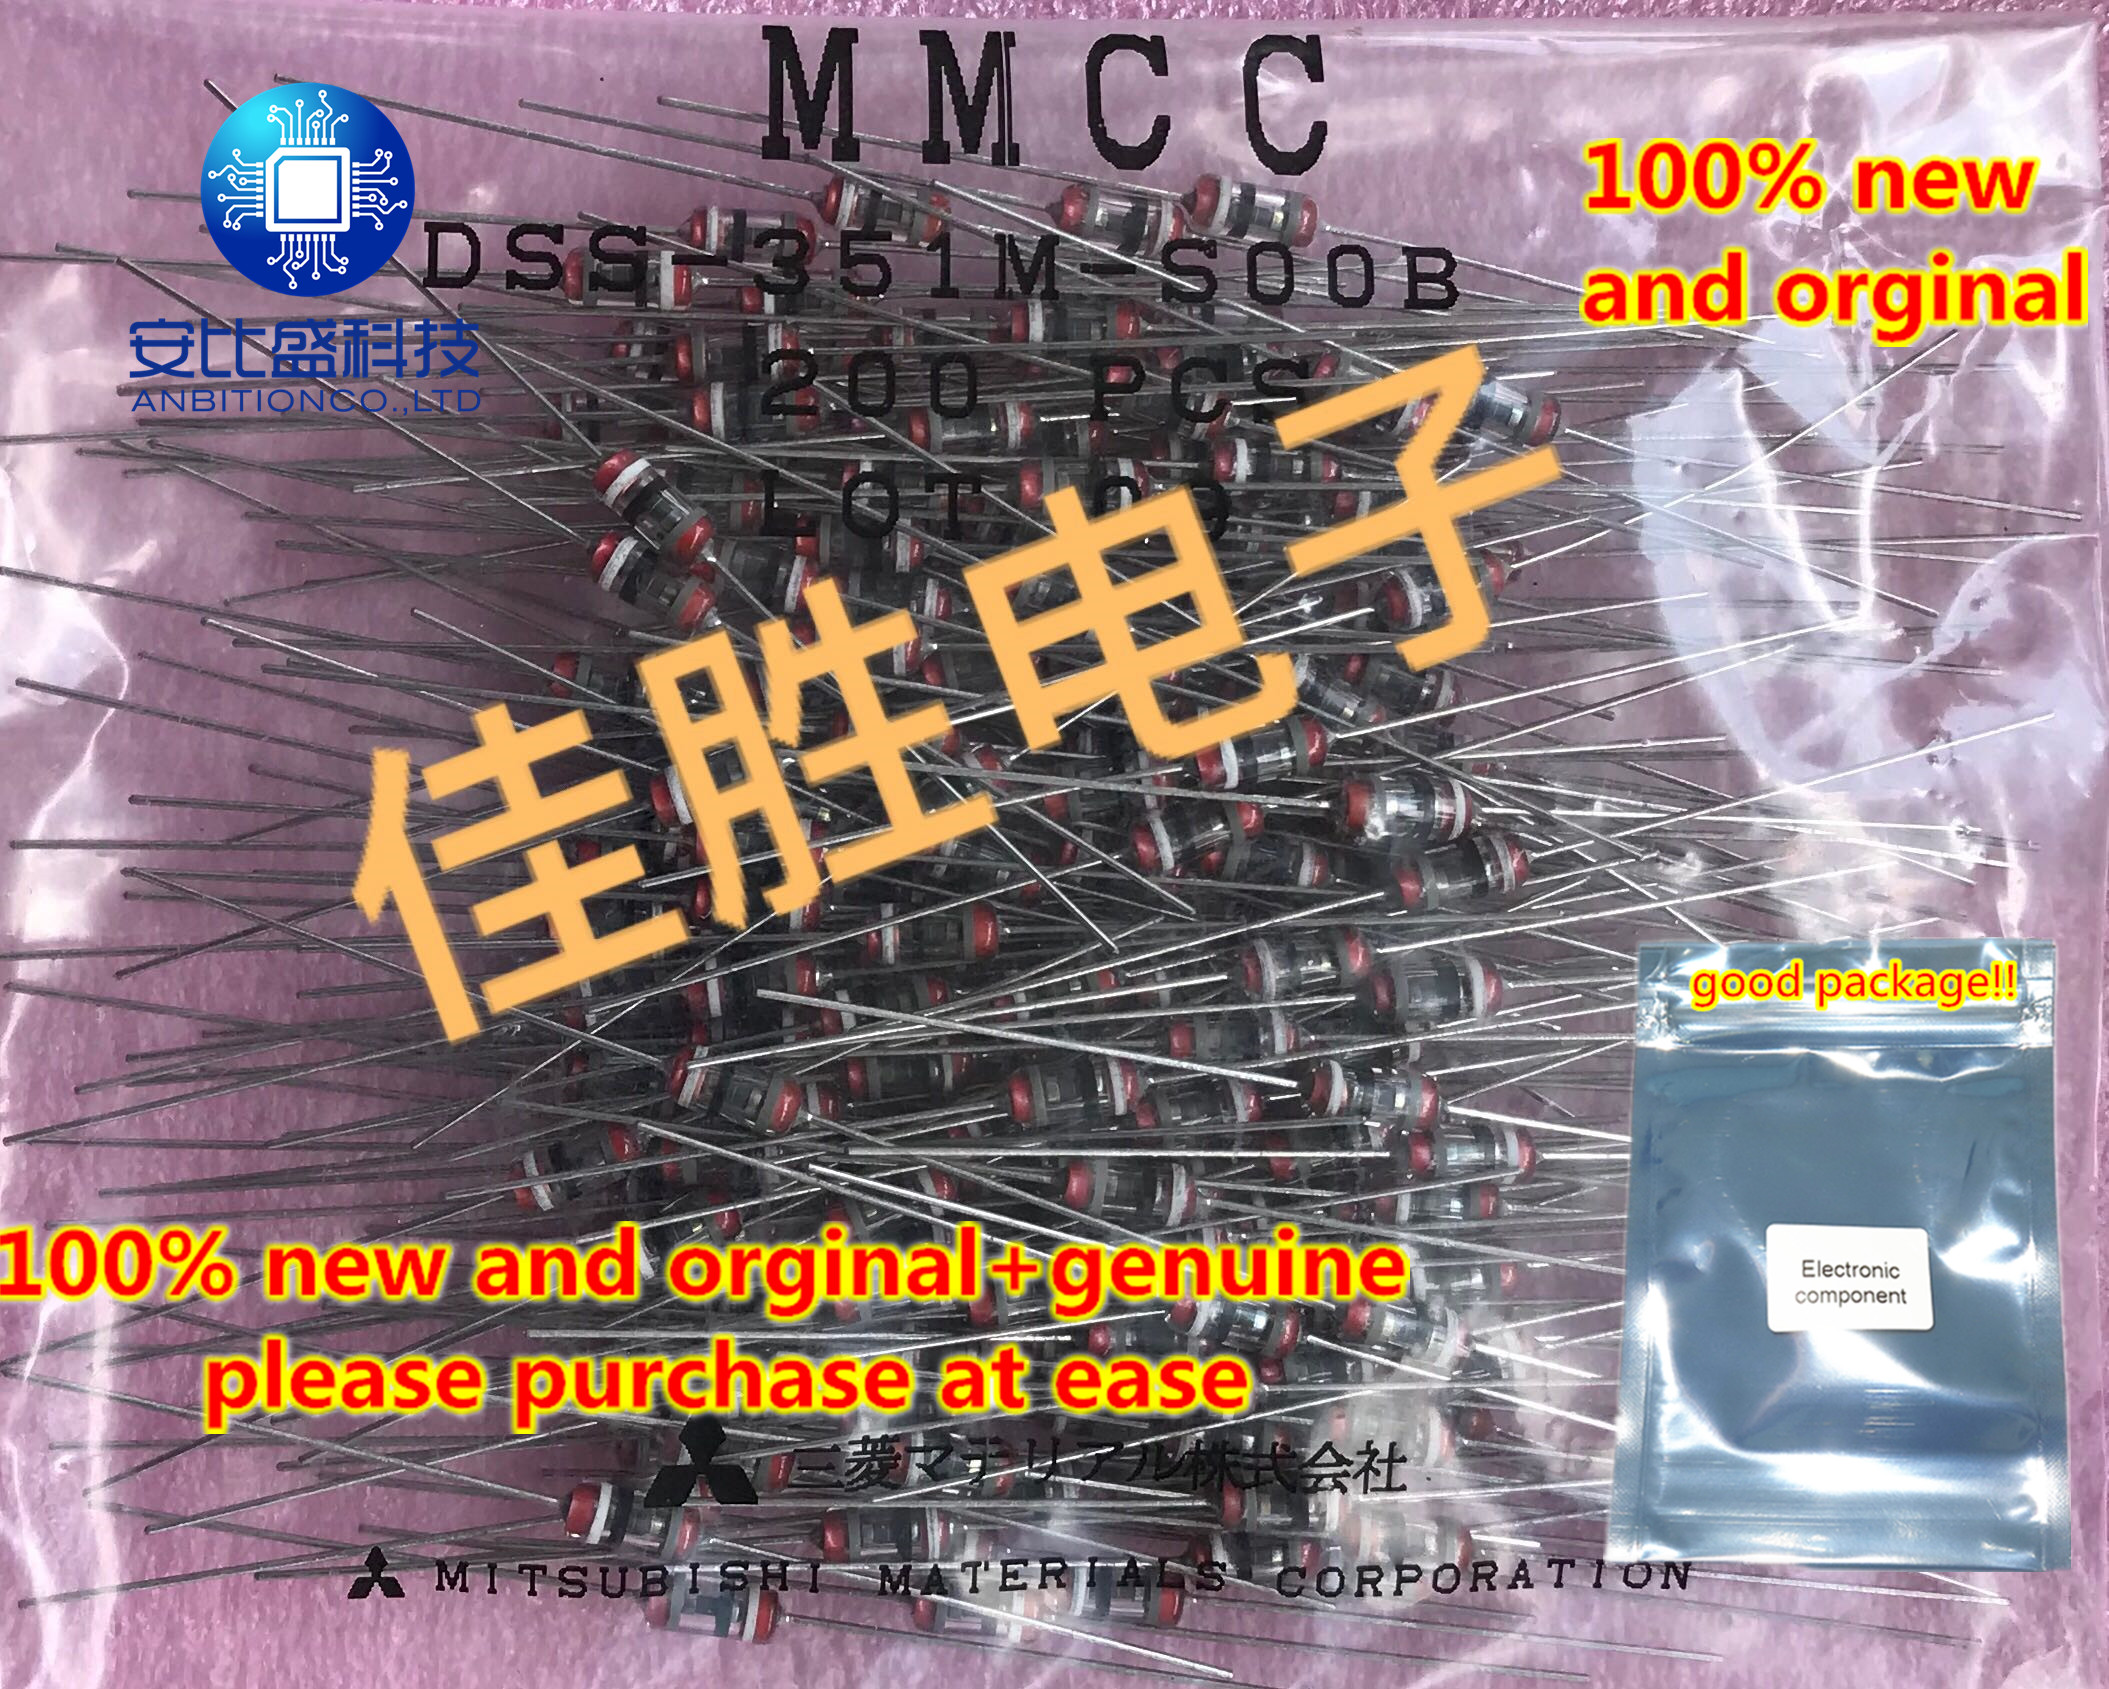 20pcs 100% New And Orginal DSS-351M-SOOB 350V Glass Gas Discharge Tube Screen Printing Gray Black And White Three Color In Stock